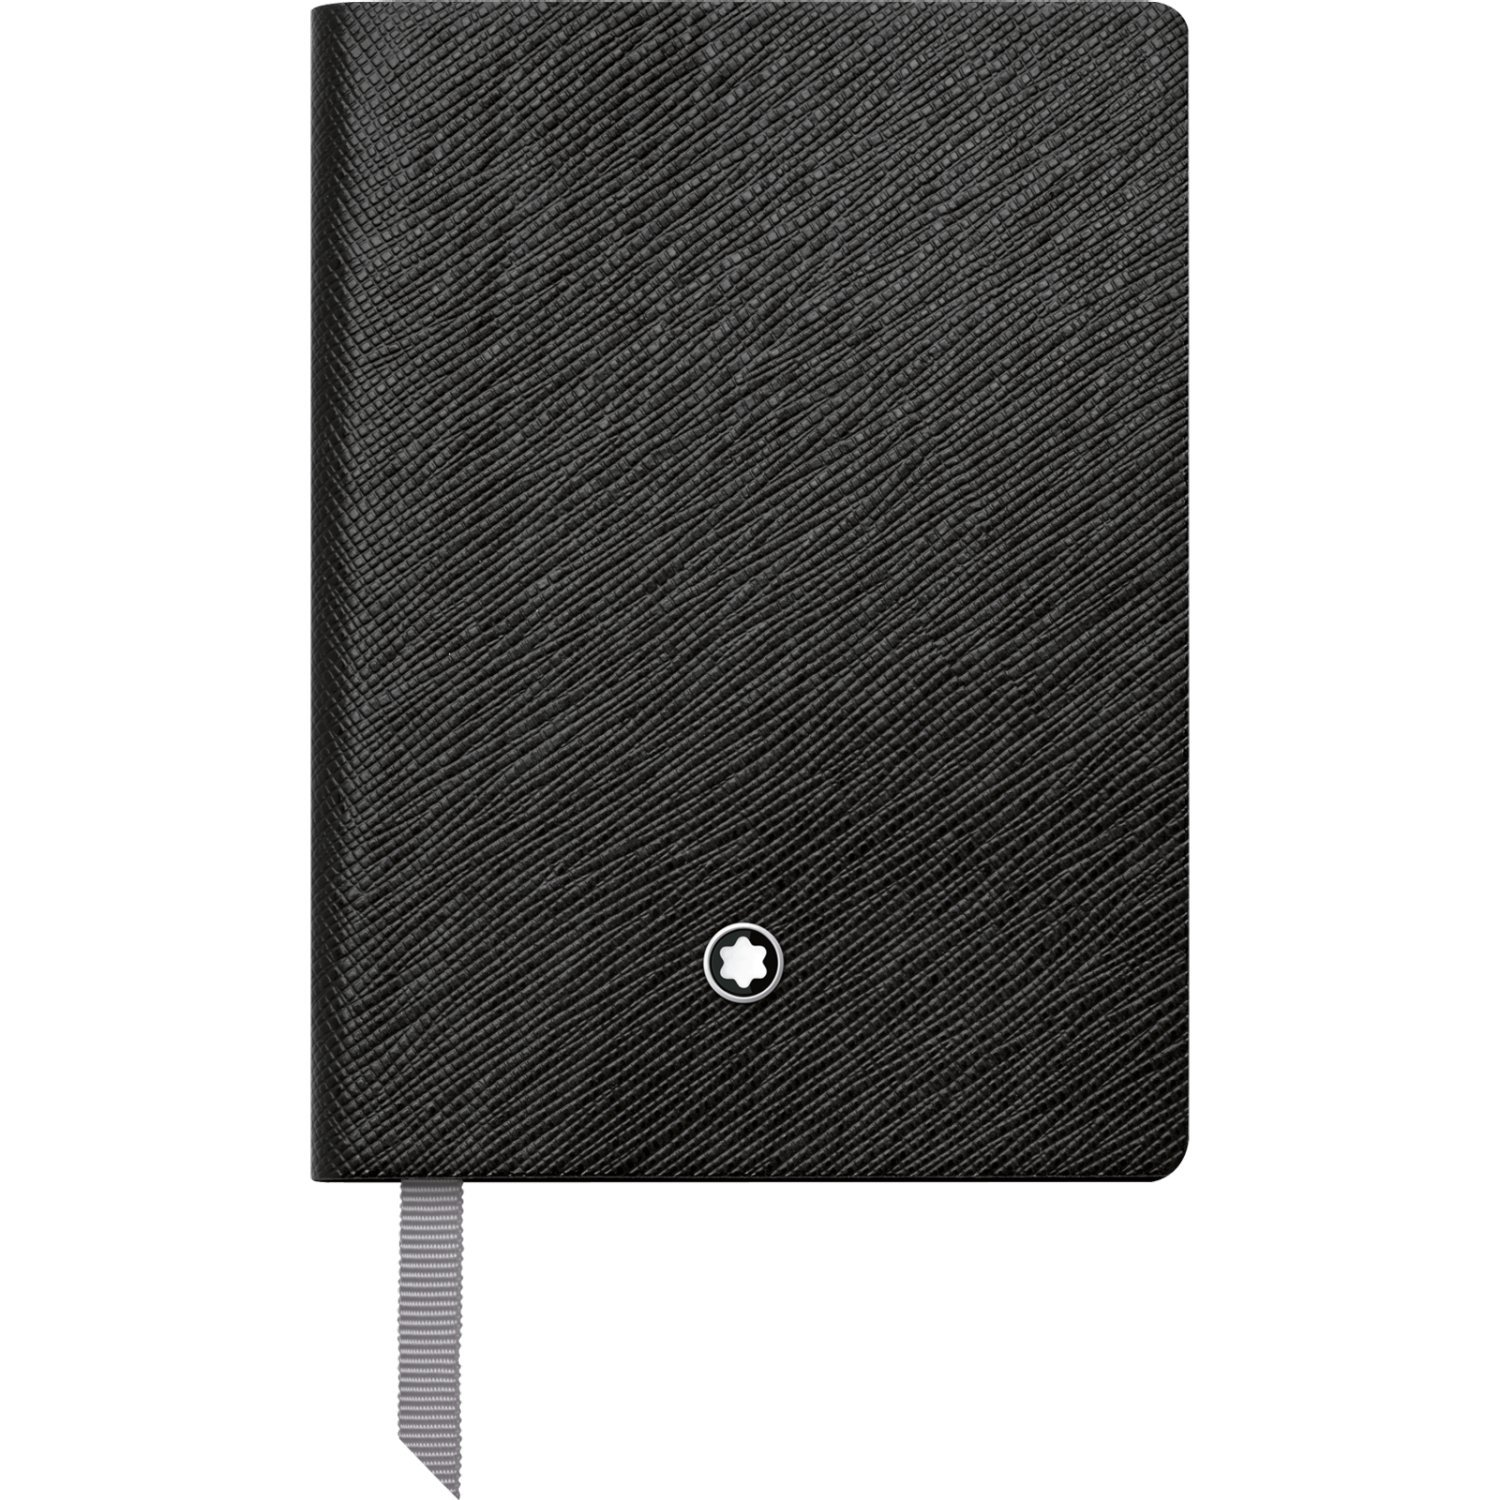 Montblanc Notebook Black Lined #145 Fine Stationery 113295 - Pocket-Size Journal with Elegant Leather Binding and Ruled Pages - 1 x (3.1 x 4.3 in.)